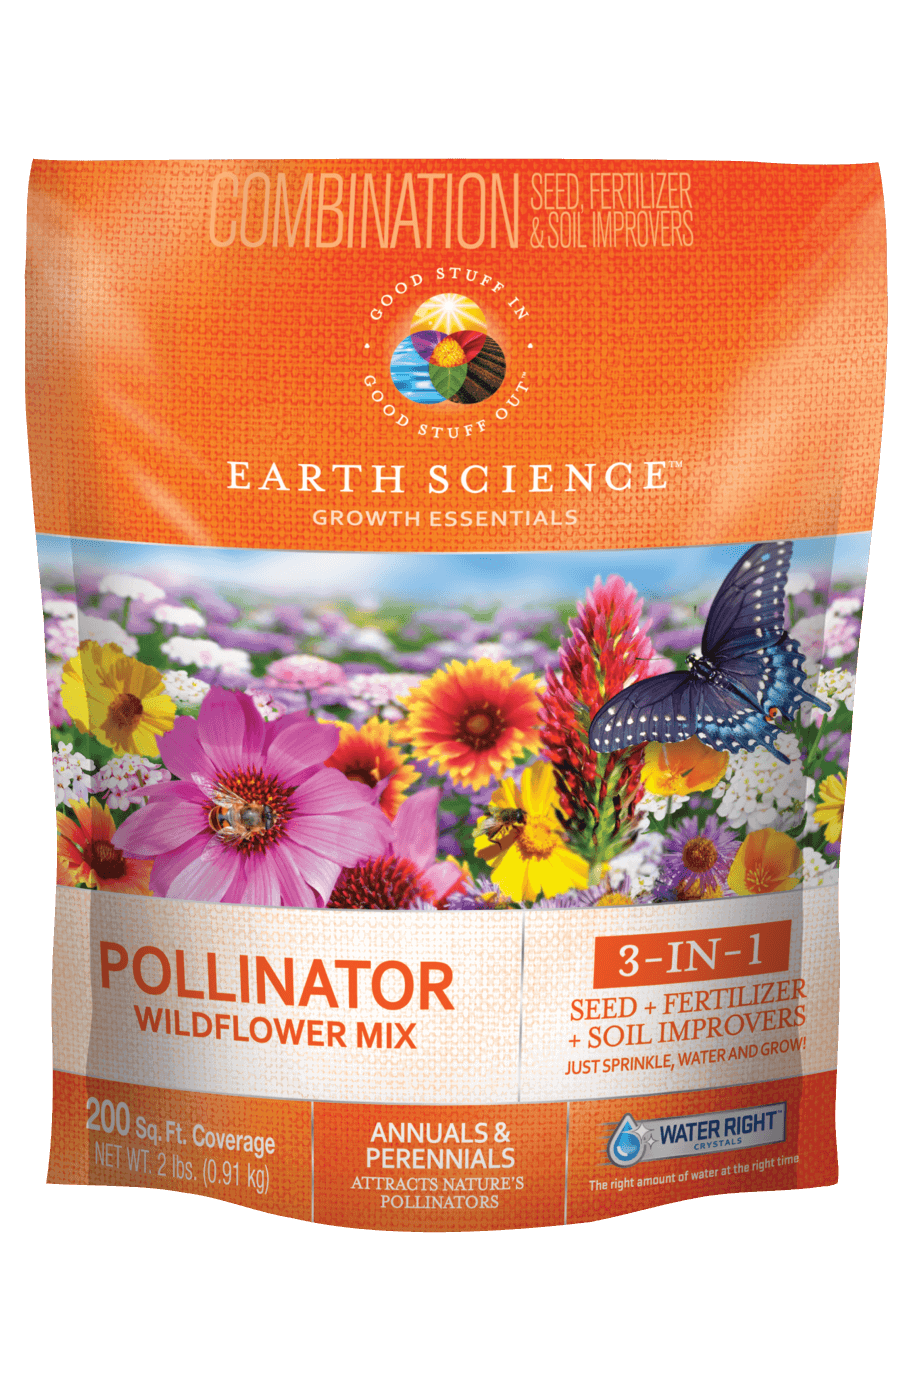 Earth Science Wildflower Pollinator Mix